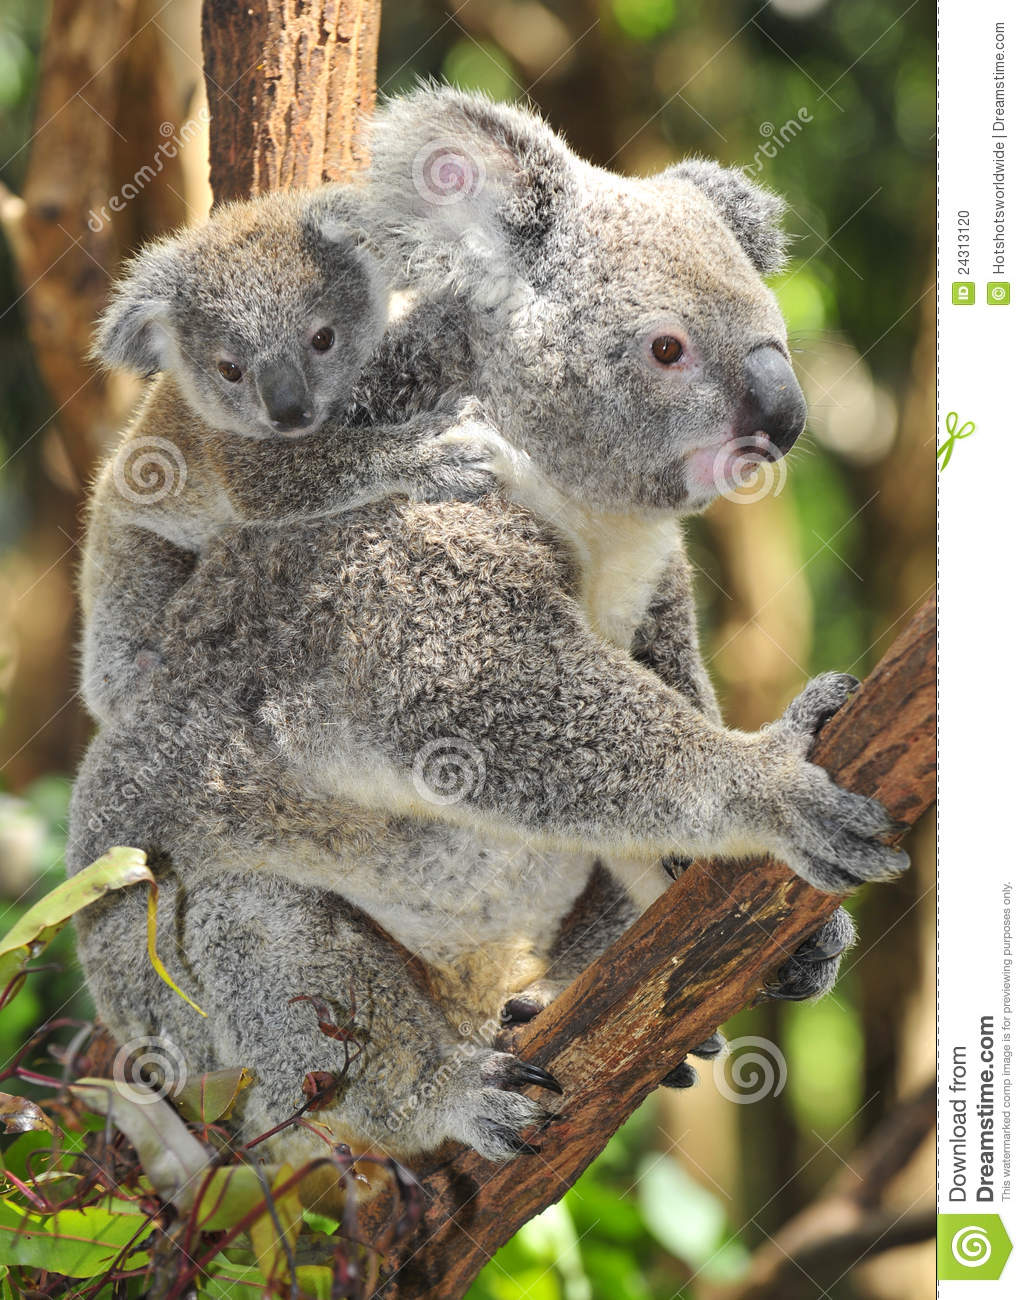 Australian Koala Bear Carrying Cute Baby Stock Photo - Image: 24313120